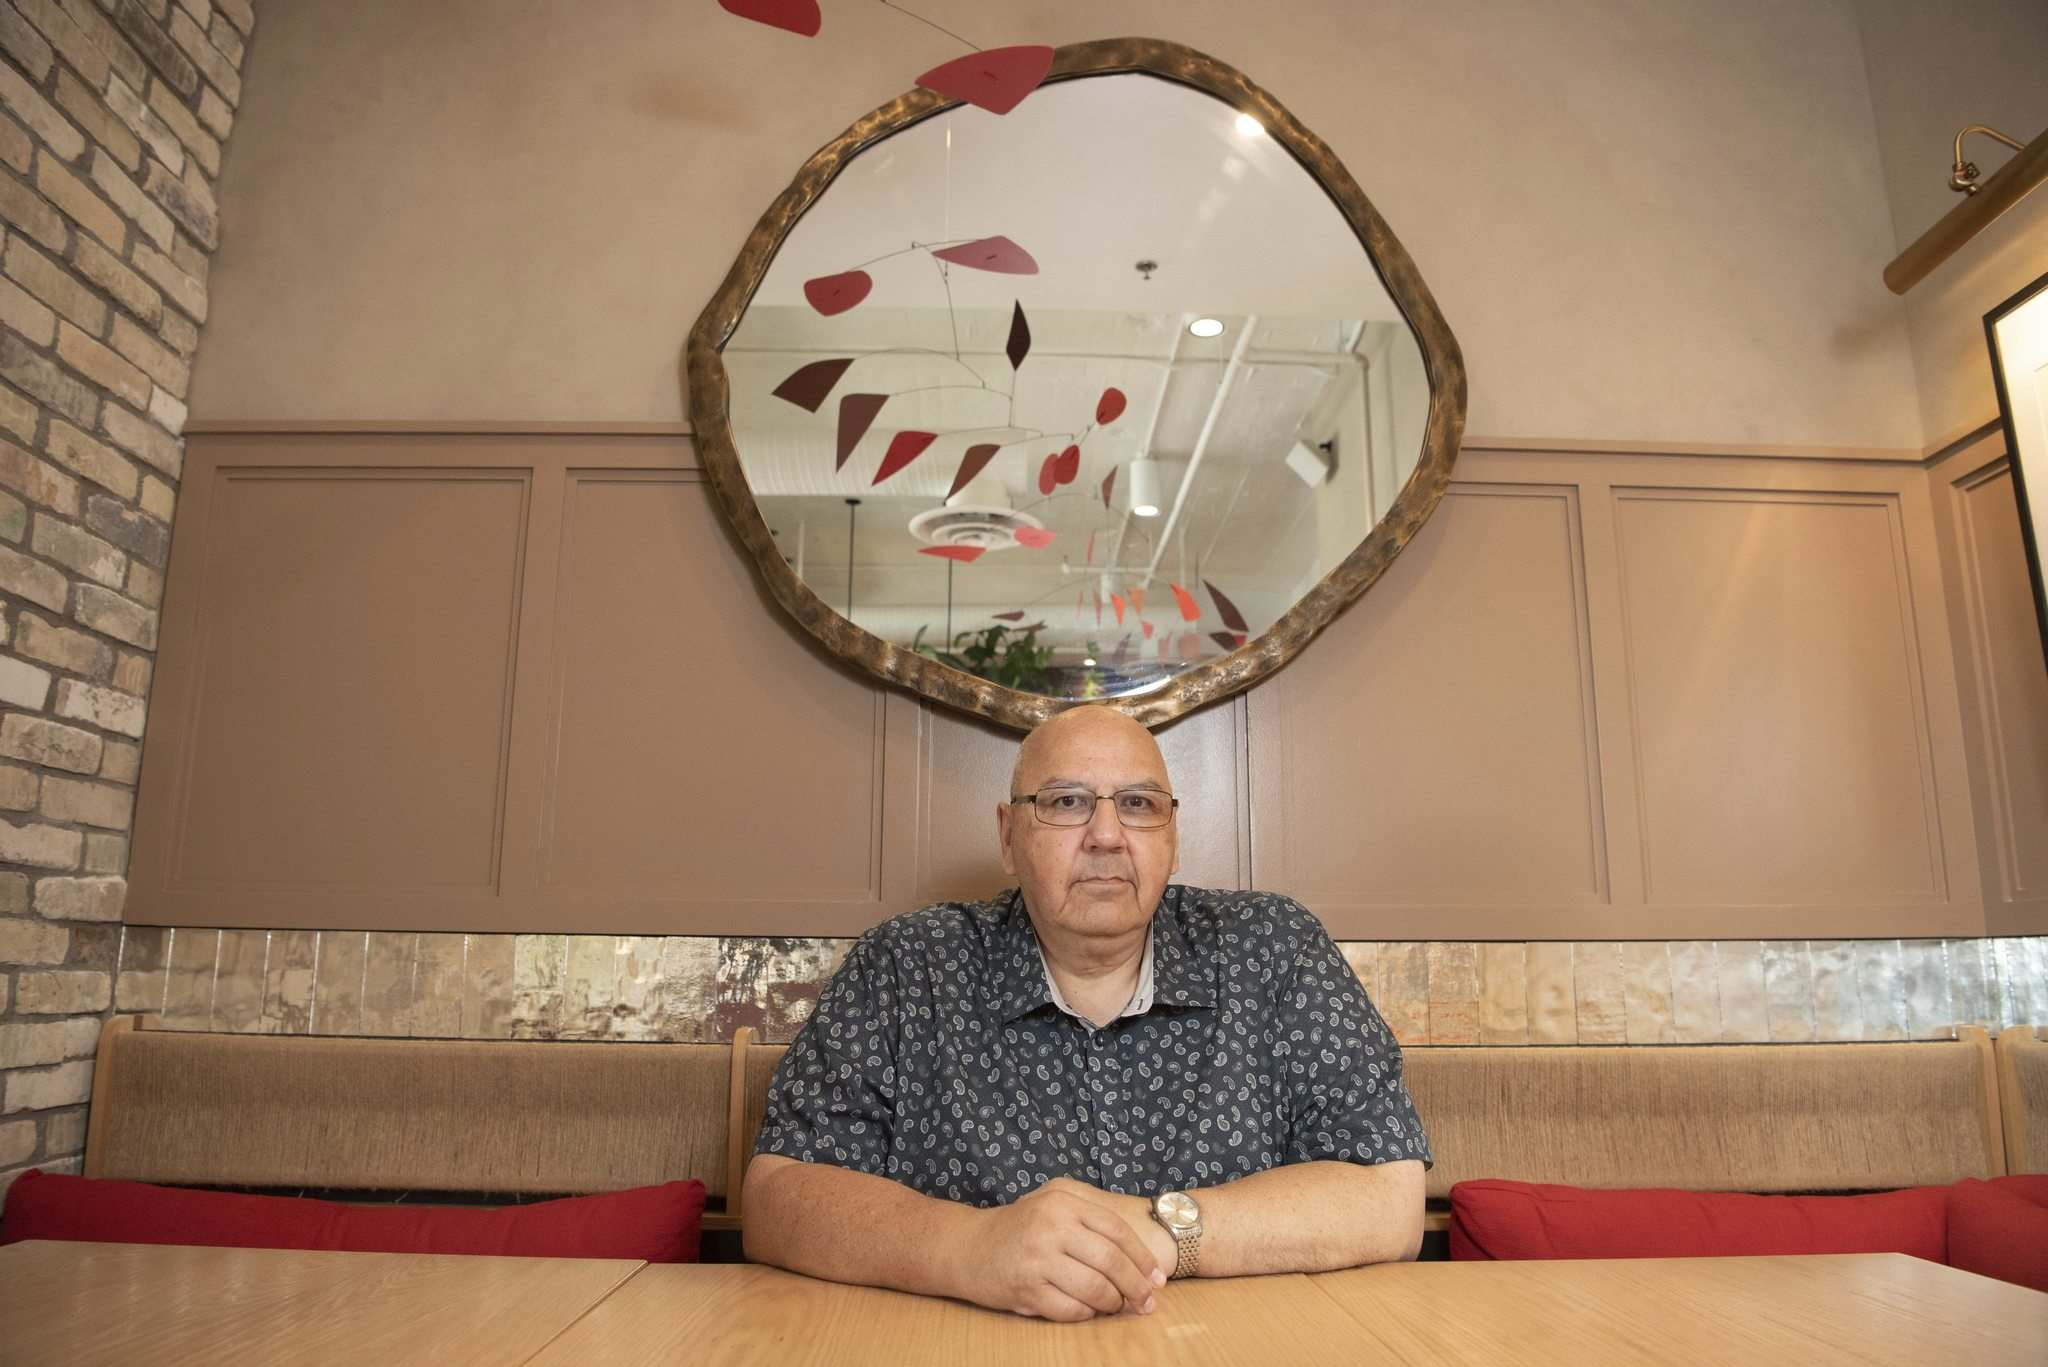 Albert McLeod is a human rights advocate and member of Nisichawayasihk Cree Nation